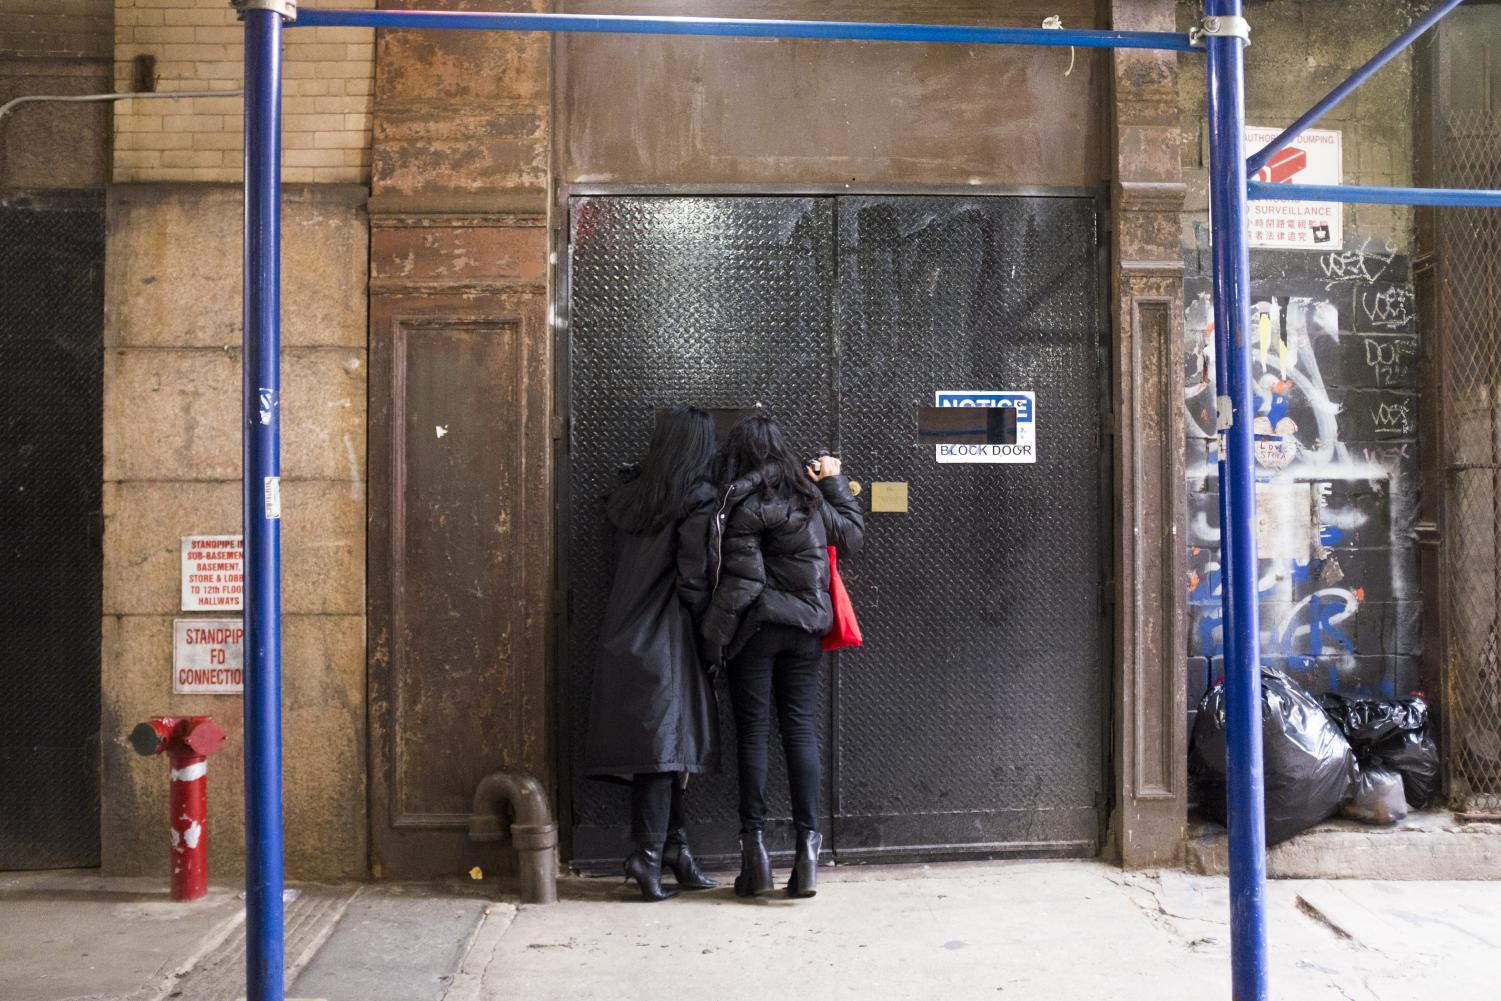 Two visitors peek inside Mmuseumm, located on Cortlandt Alley. Even when the museum is closed, visitors can call a toll-free number to hear about the objects, or look inside the building's windows.